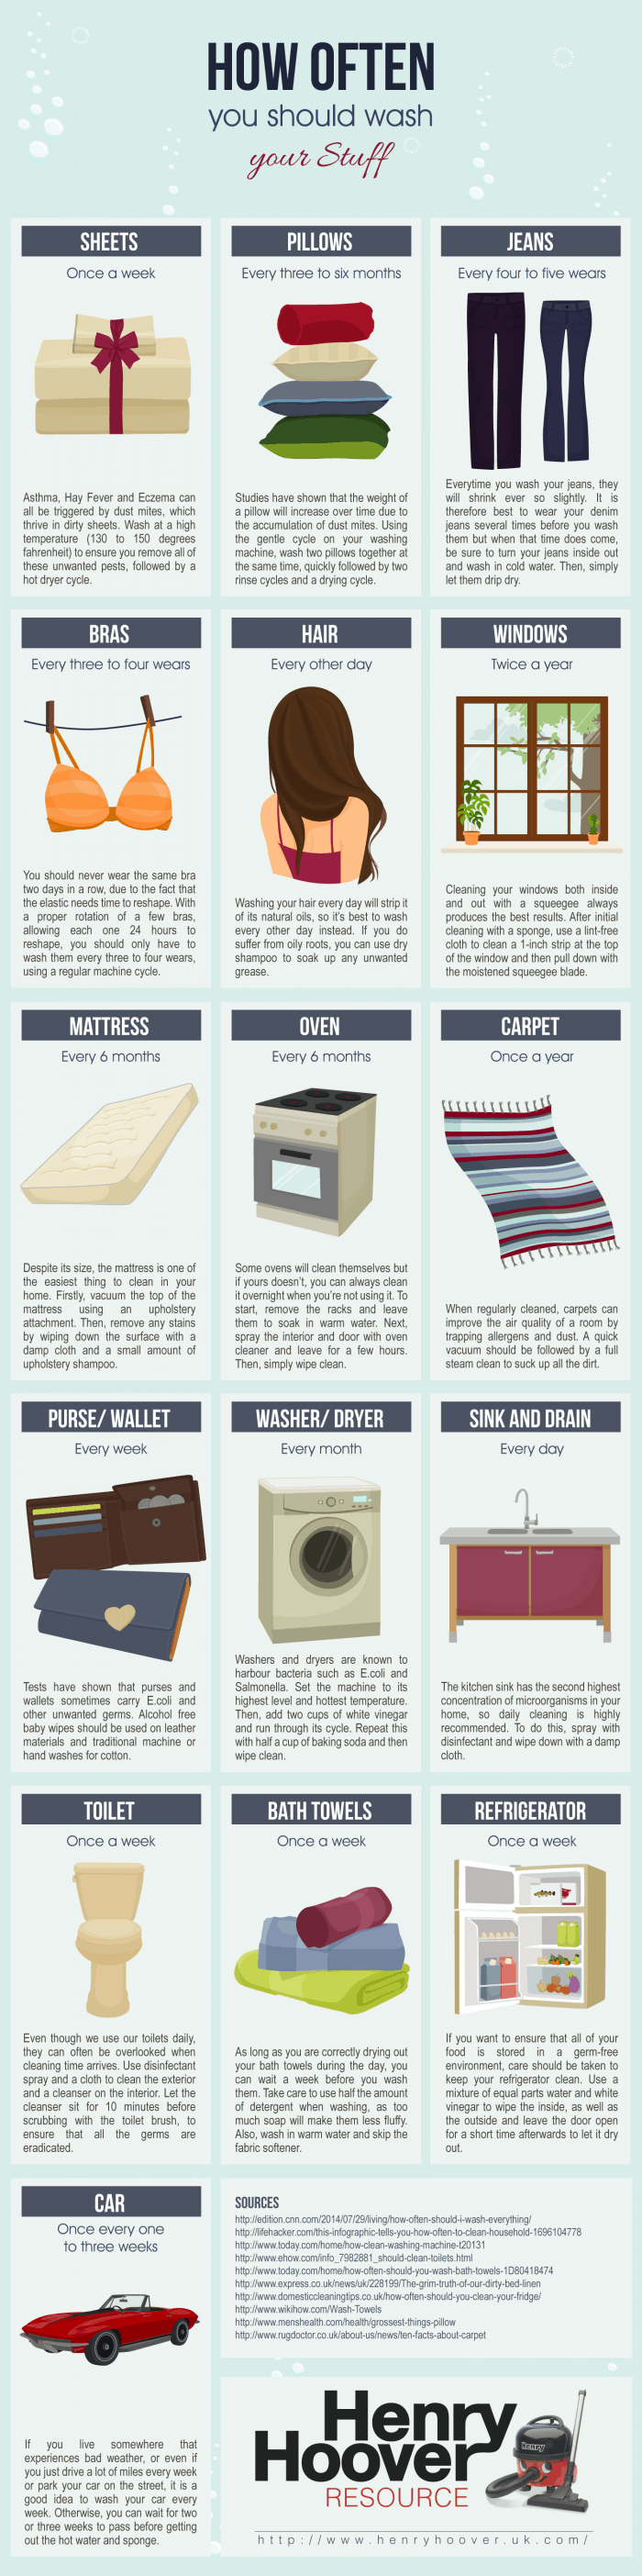 infographic describes how often you should wash your shirt, wash your sheets, clean your mattress, clean your car, clean the oven and clean the windows